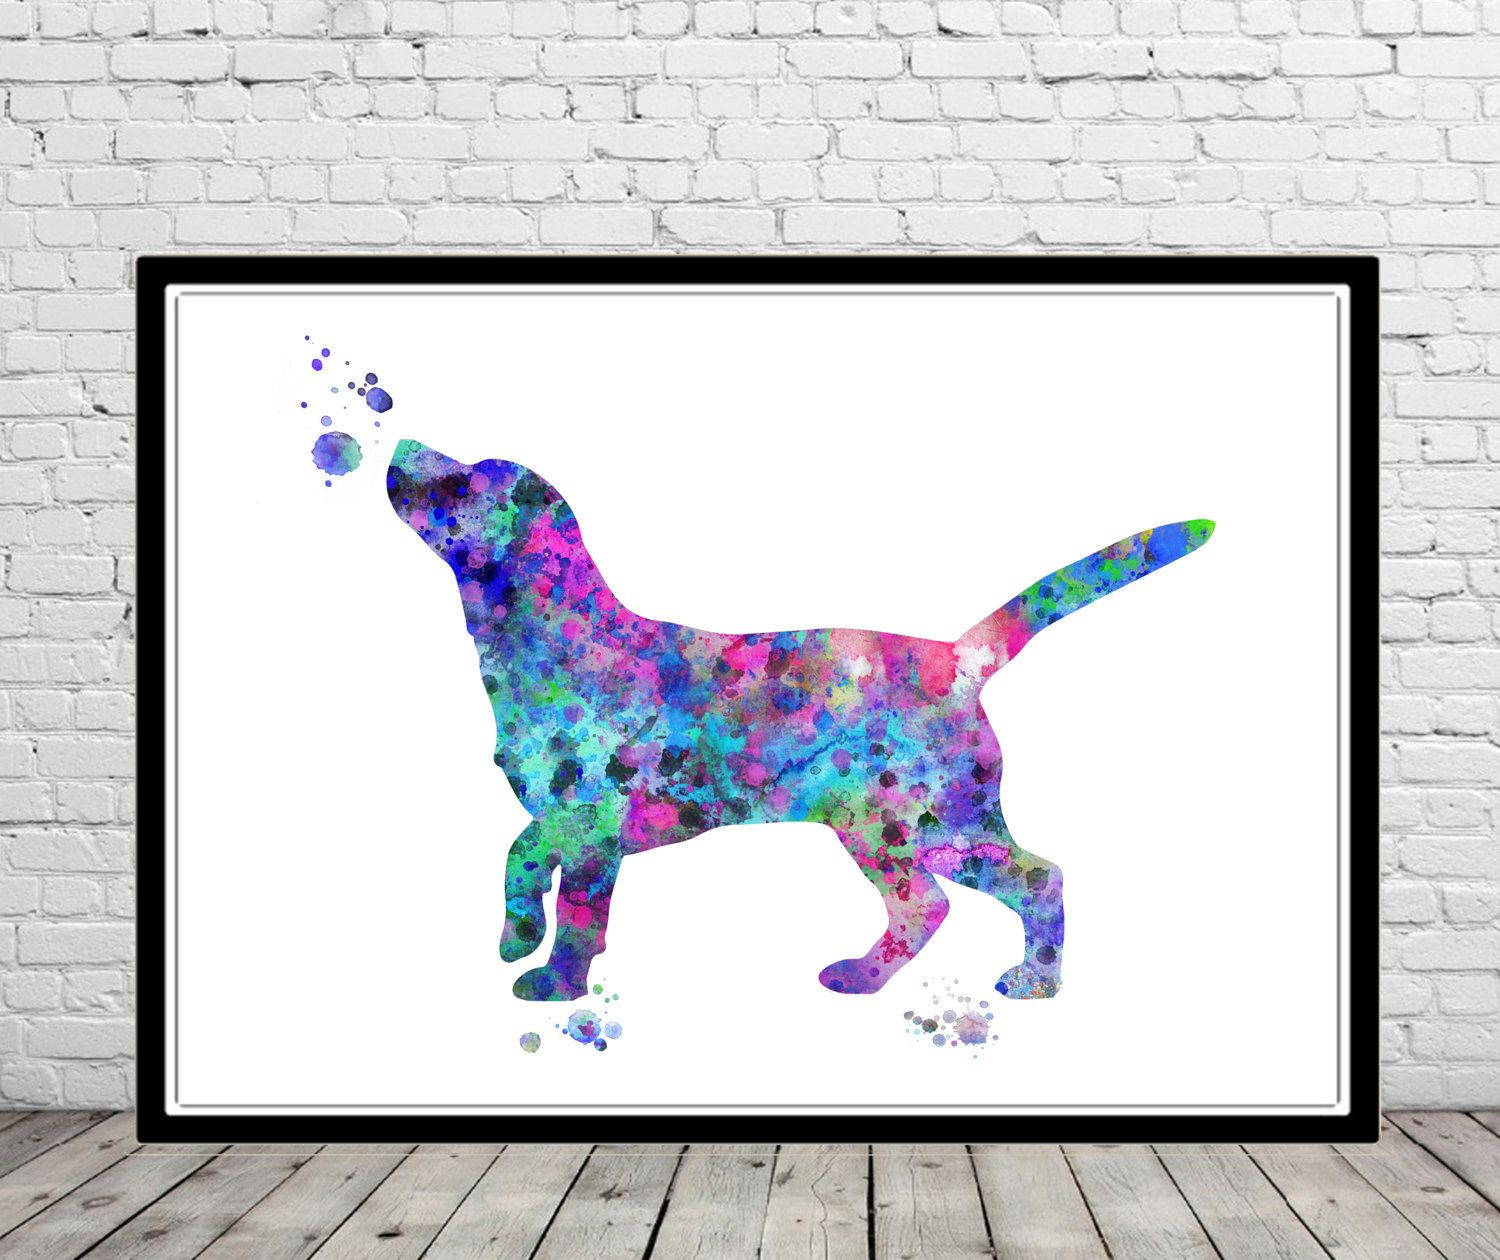 Beagle Beagle Dog Watercolor Beagle Watercolor Print Dog Print